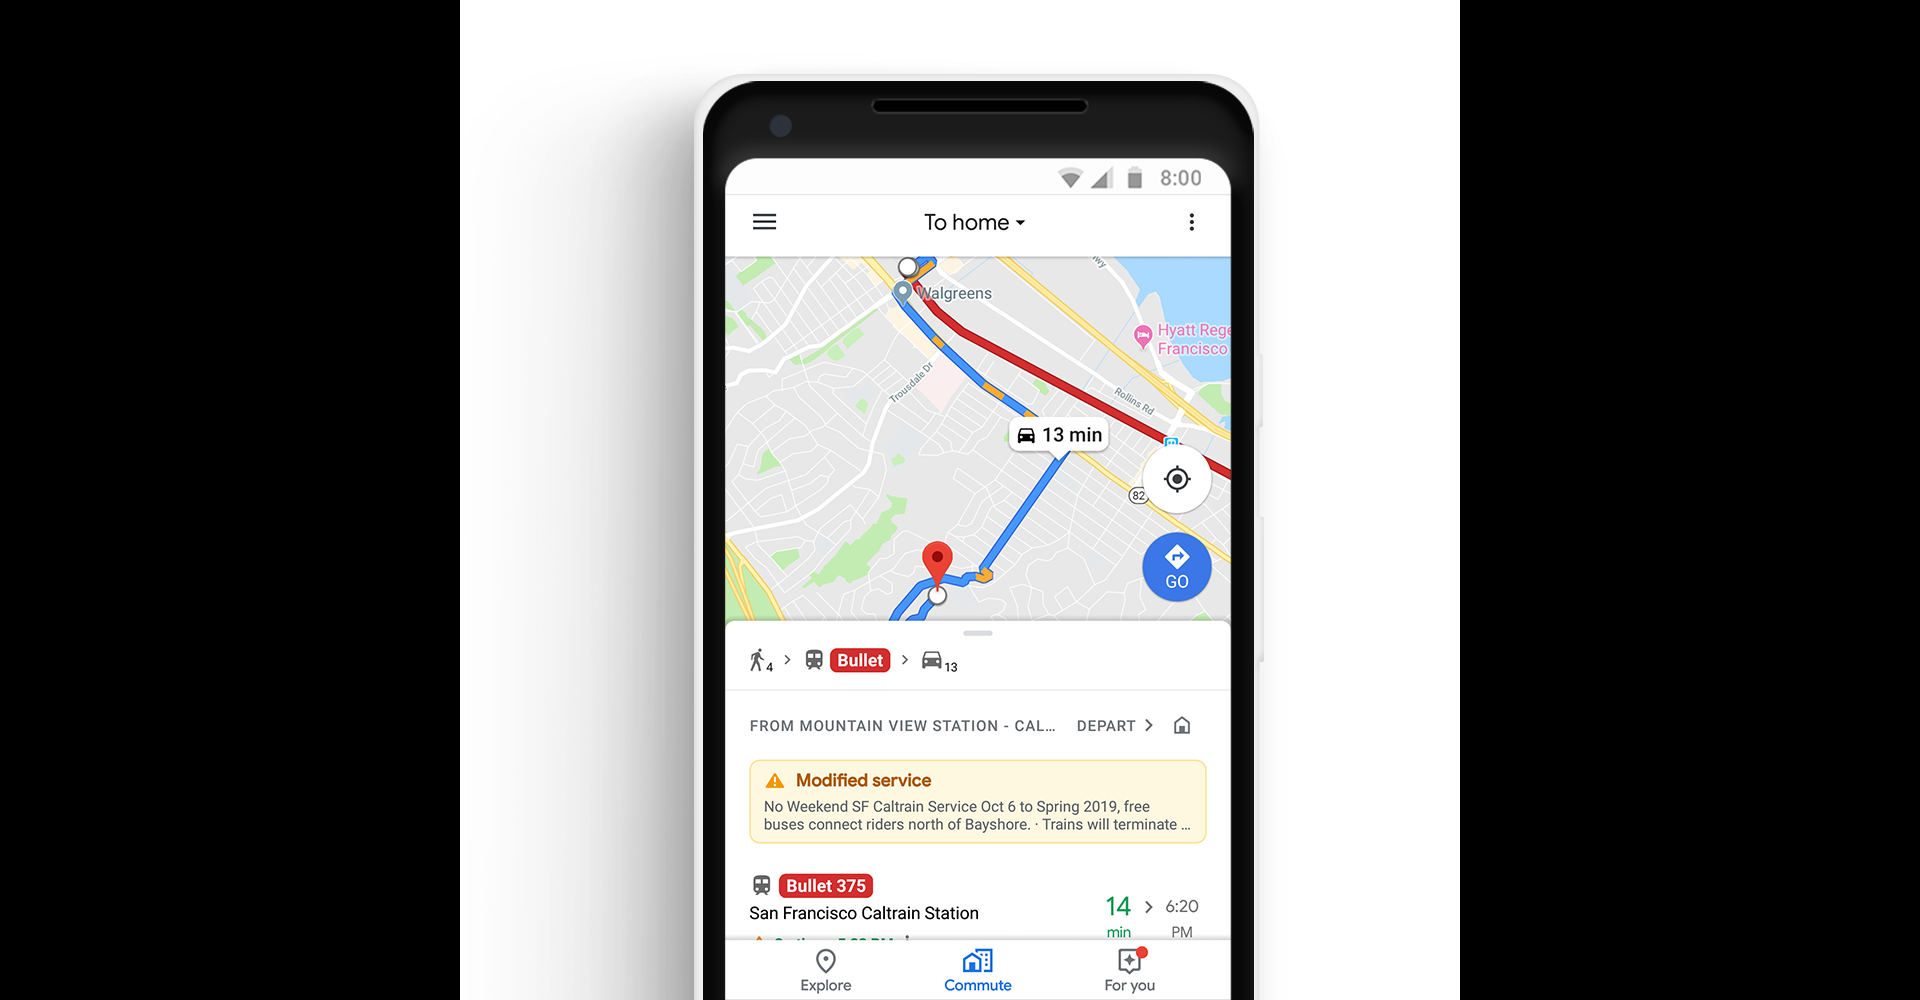 Google Maps Adds Commuting Features - MacStories on google map turkey, gasbuddy app, craigslist app, google earth, google docs app, google map art, google app icon, google circles app, google books app, weather app, google world app, evernote app, google texting app, google calendar, google search app, google mapquest, google navigation app, google map from to, traductor google app,